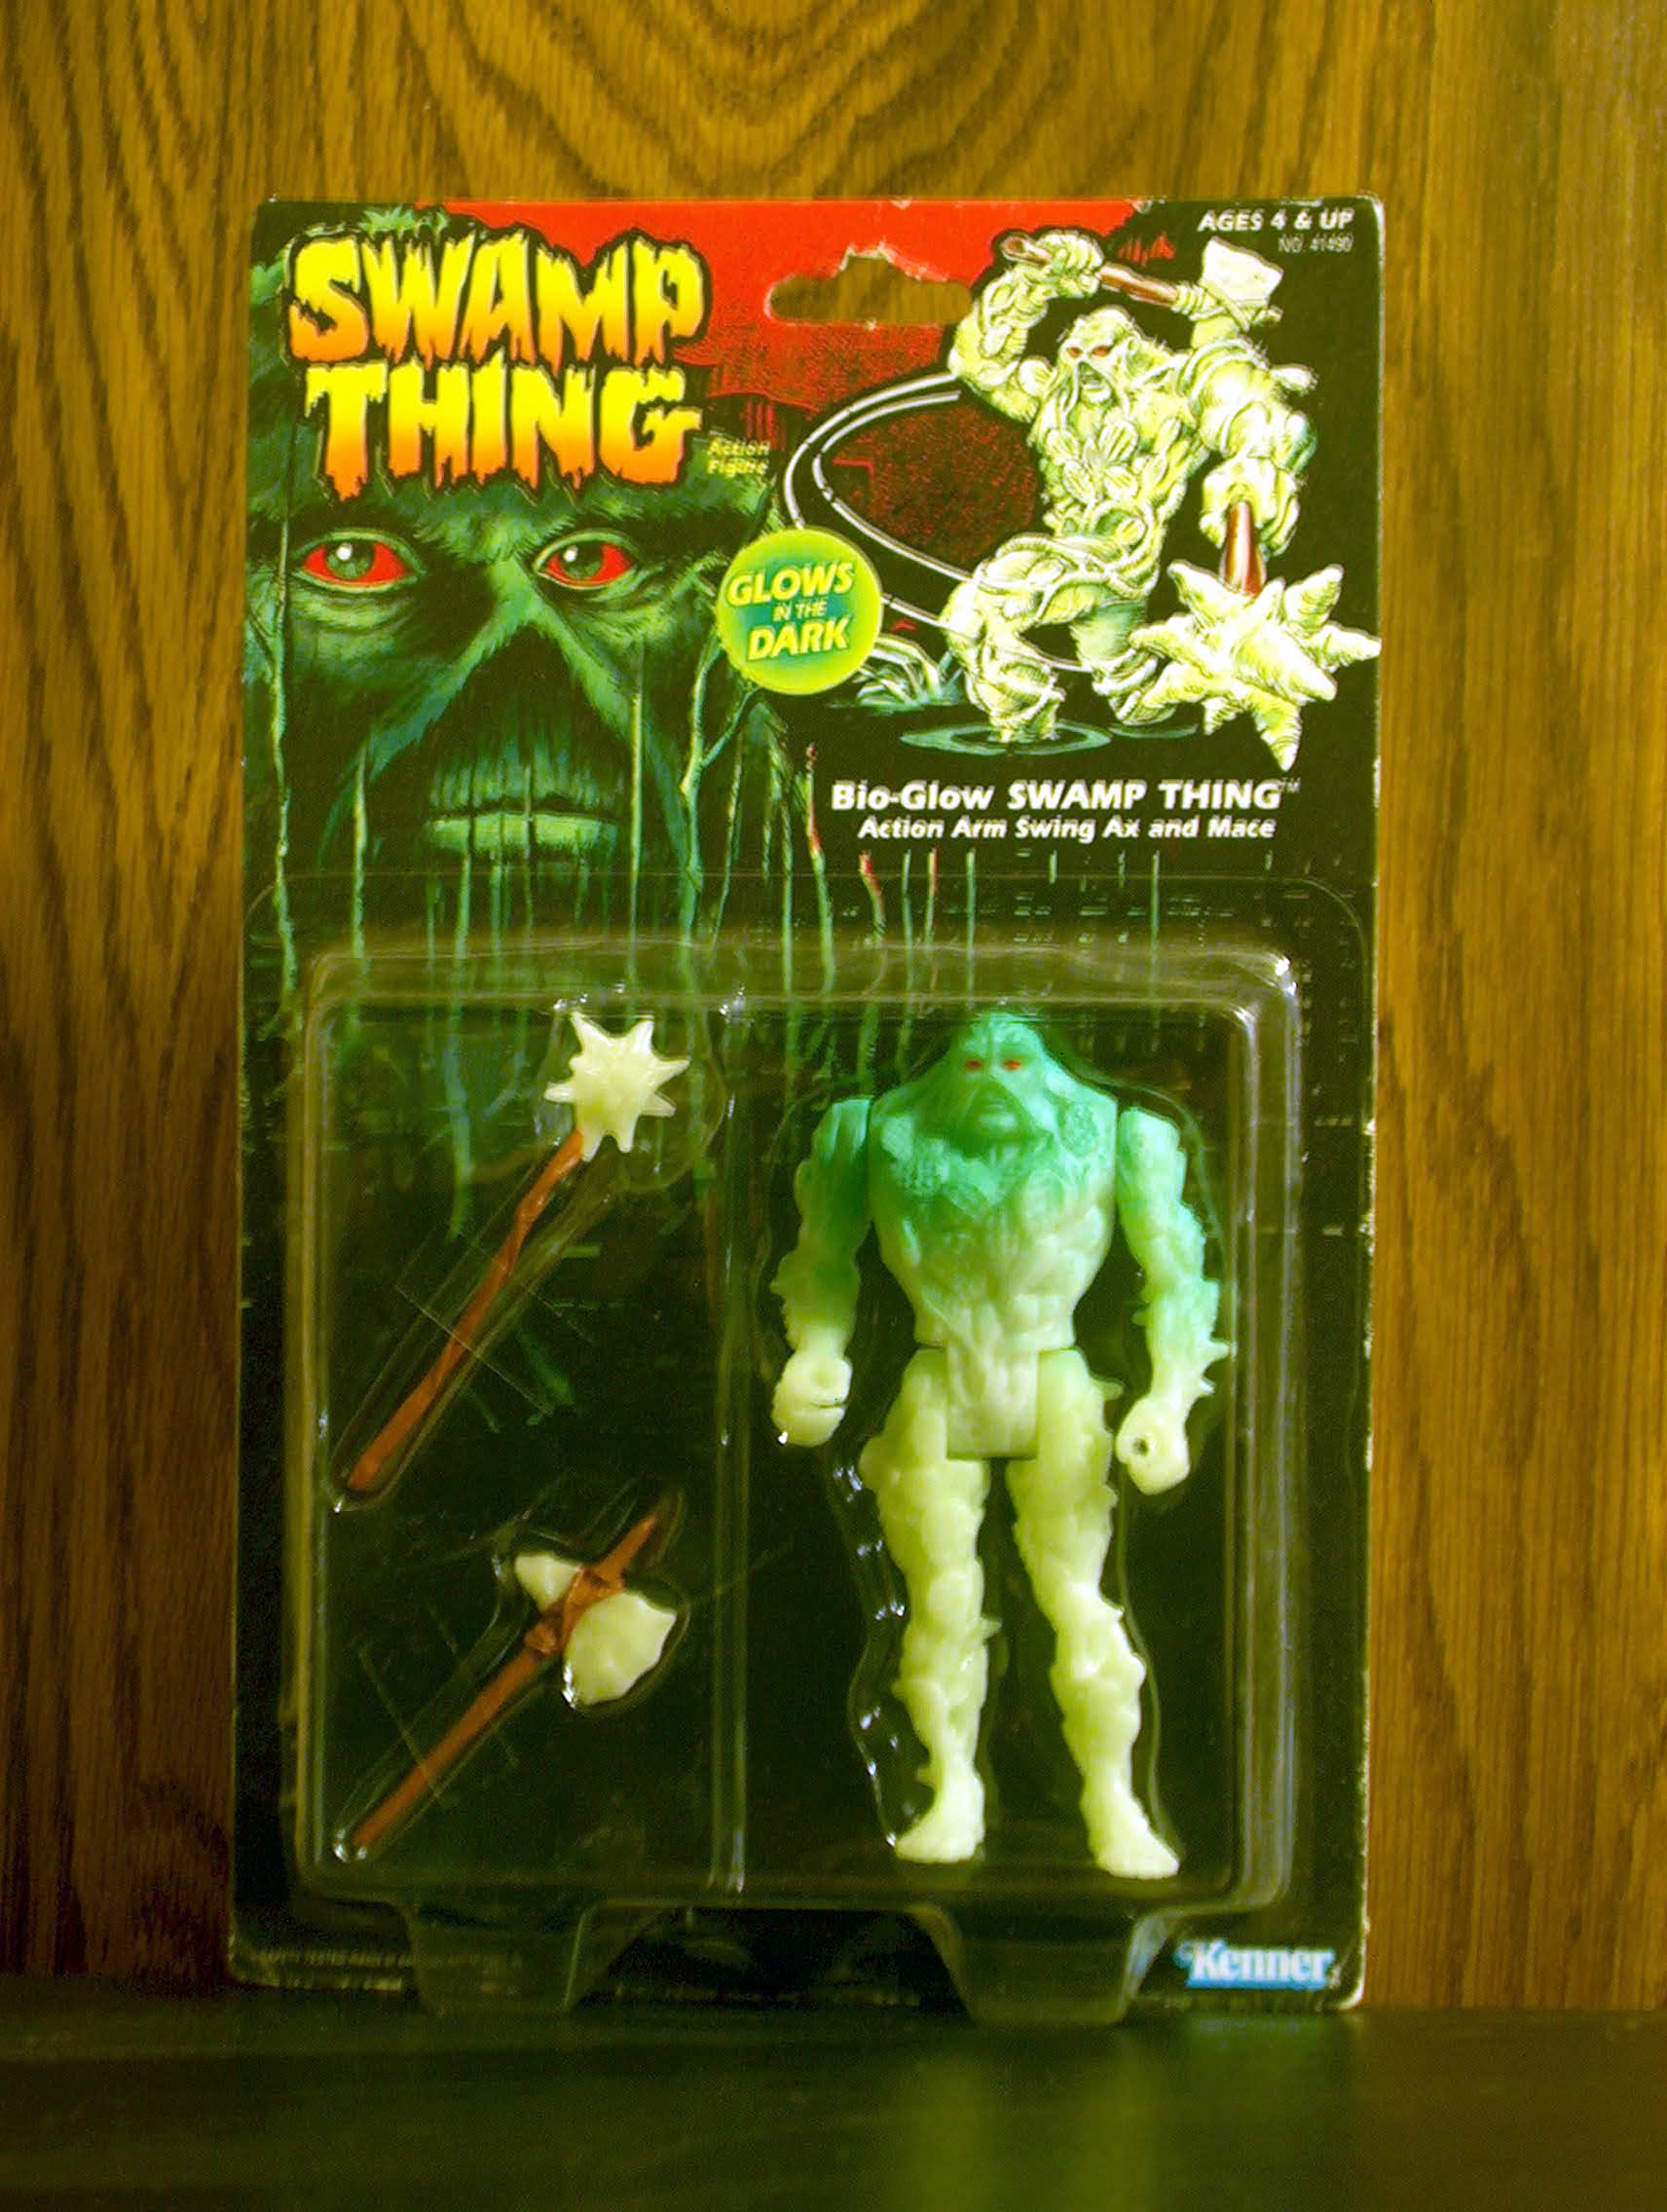 Bio-glow Swamp Thing Action Arm Swing Axe and Mace